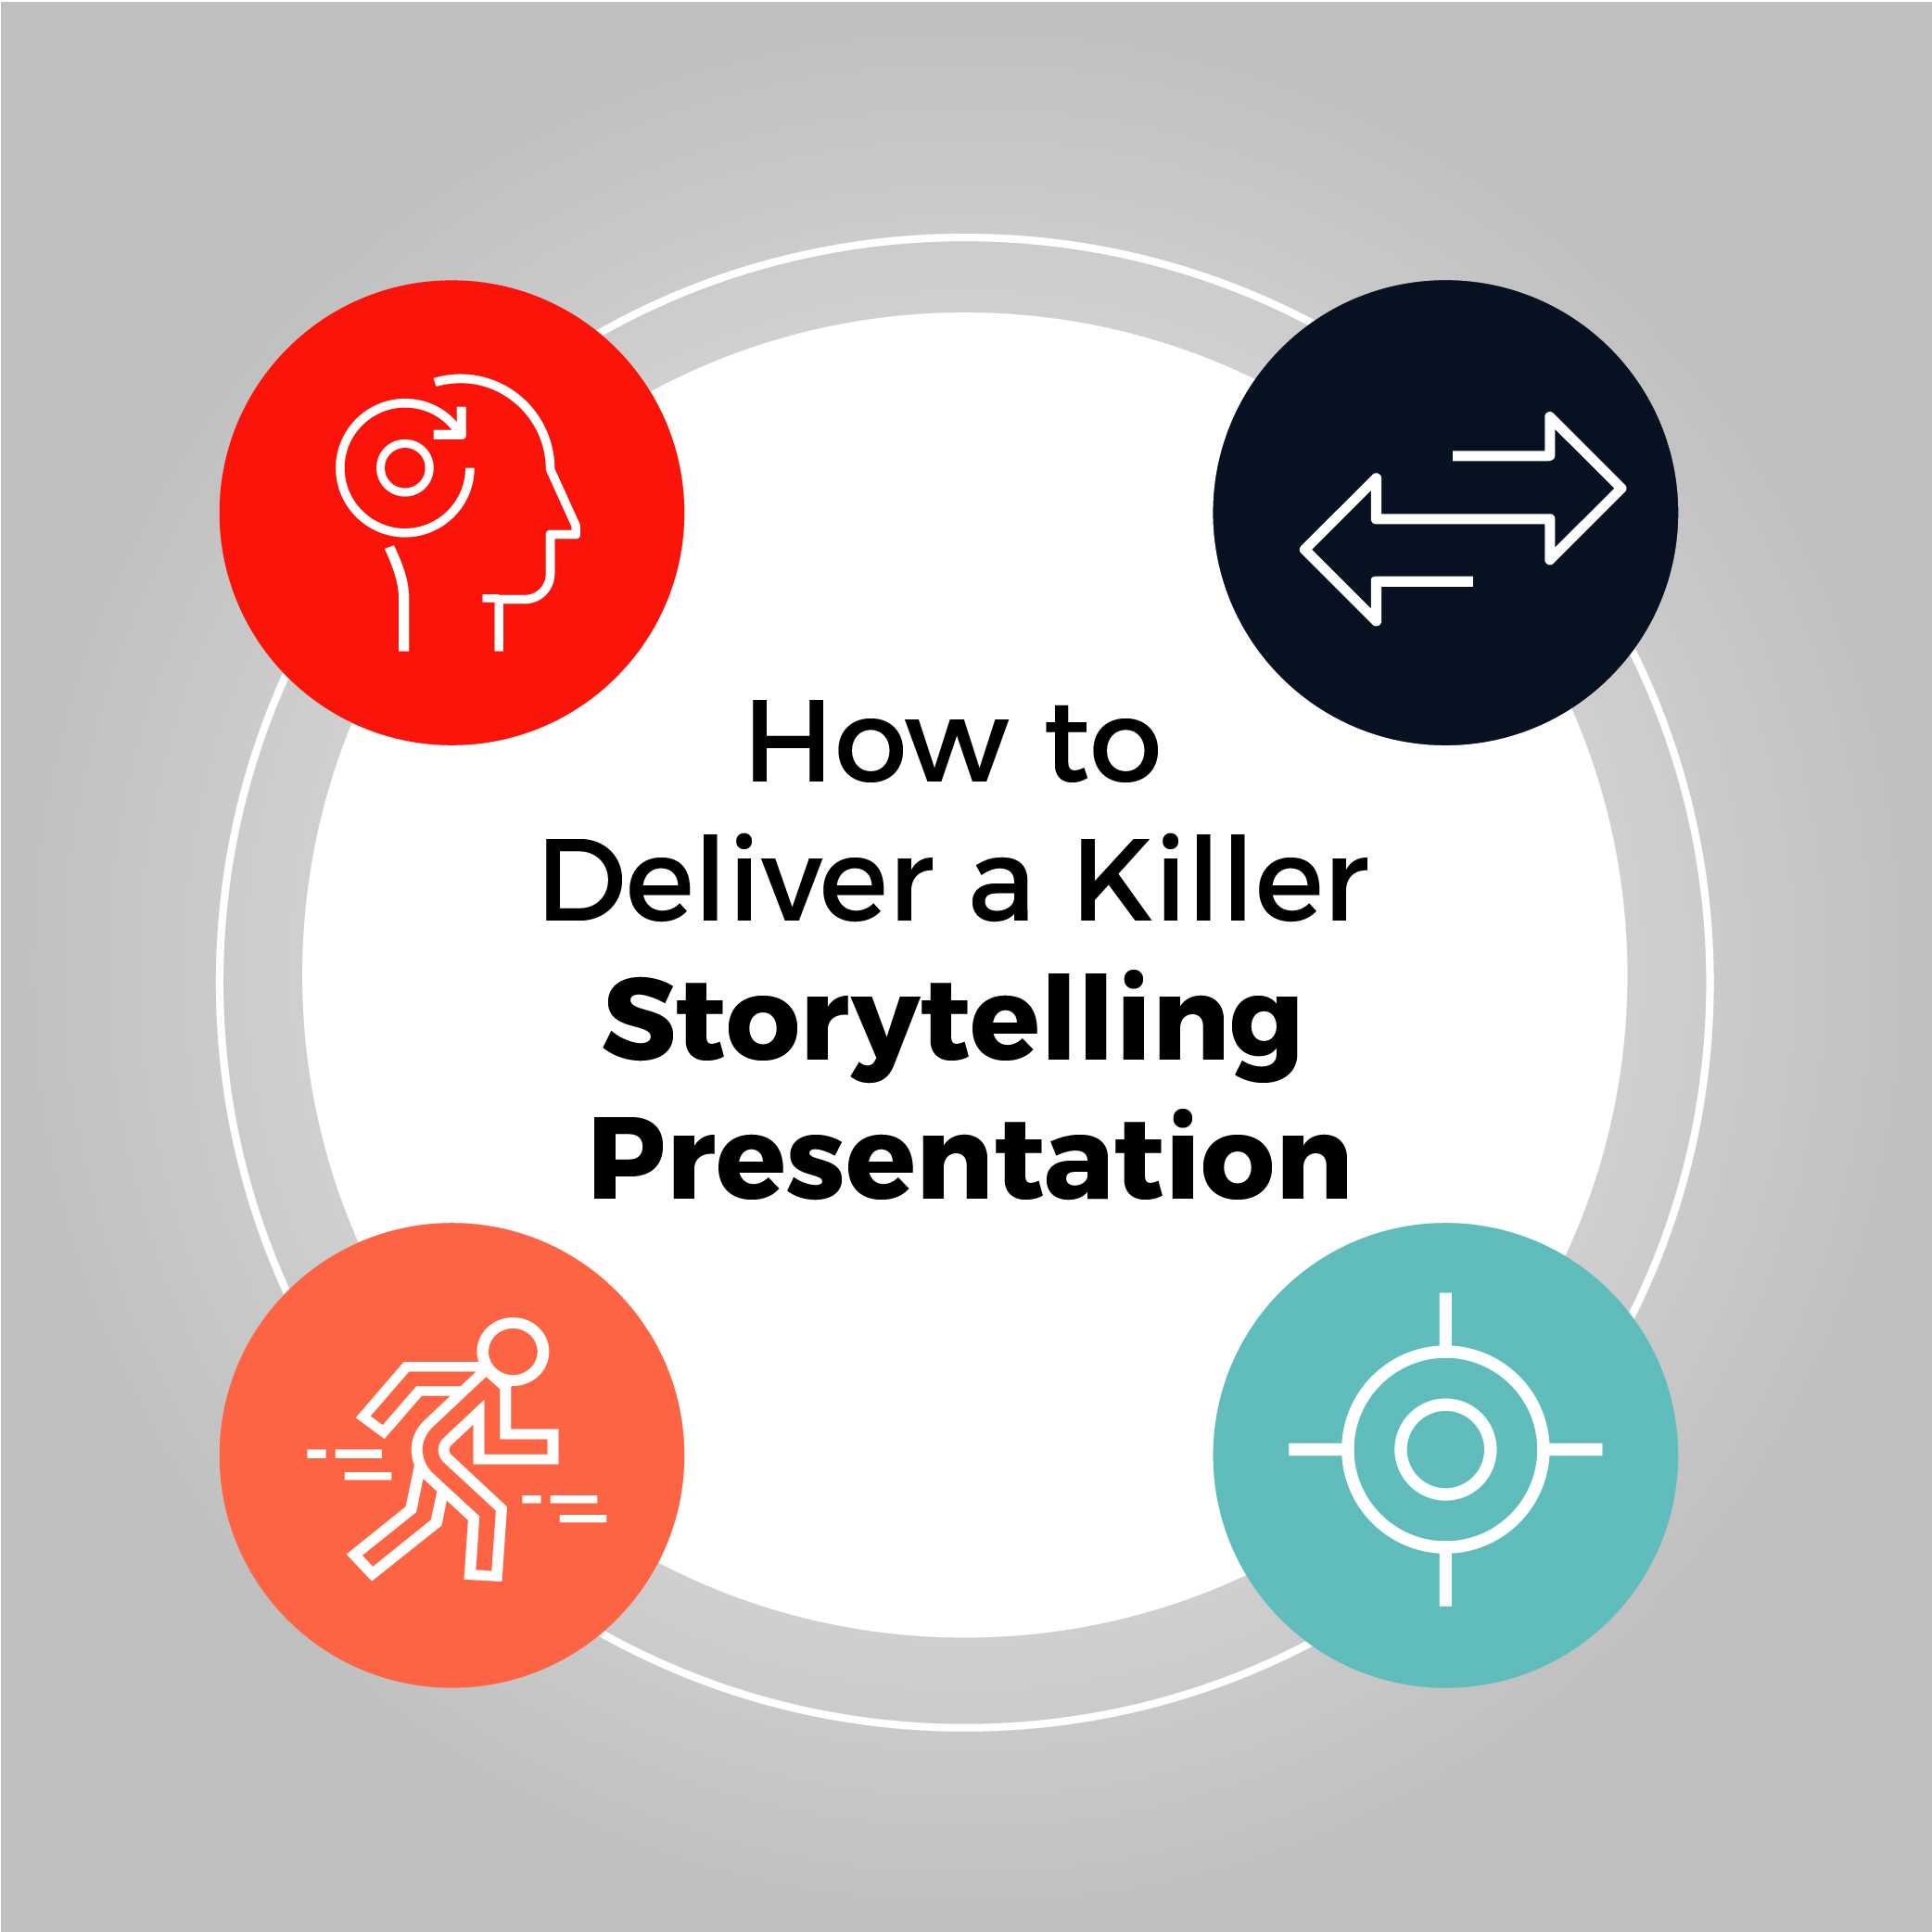 How to deliver a killer storytelling presentation